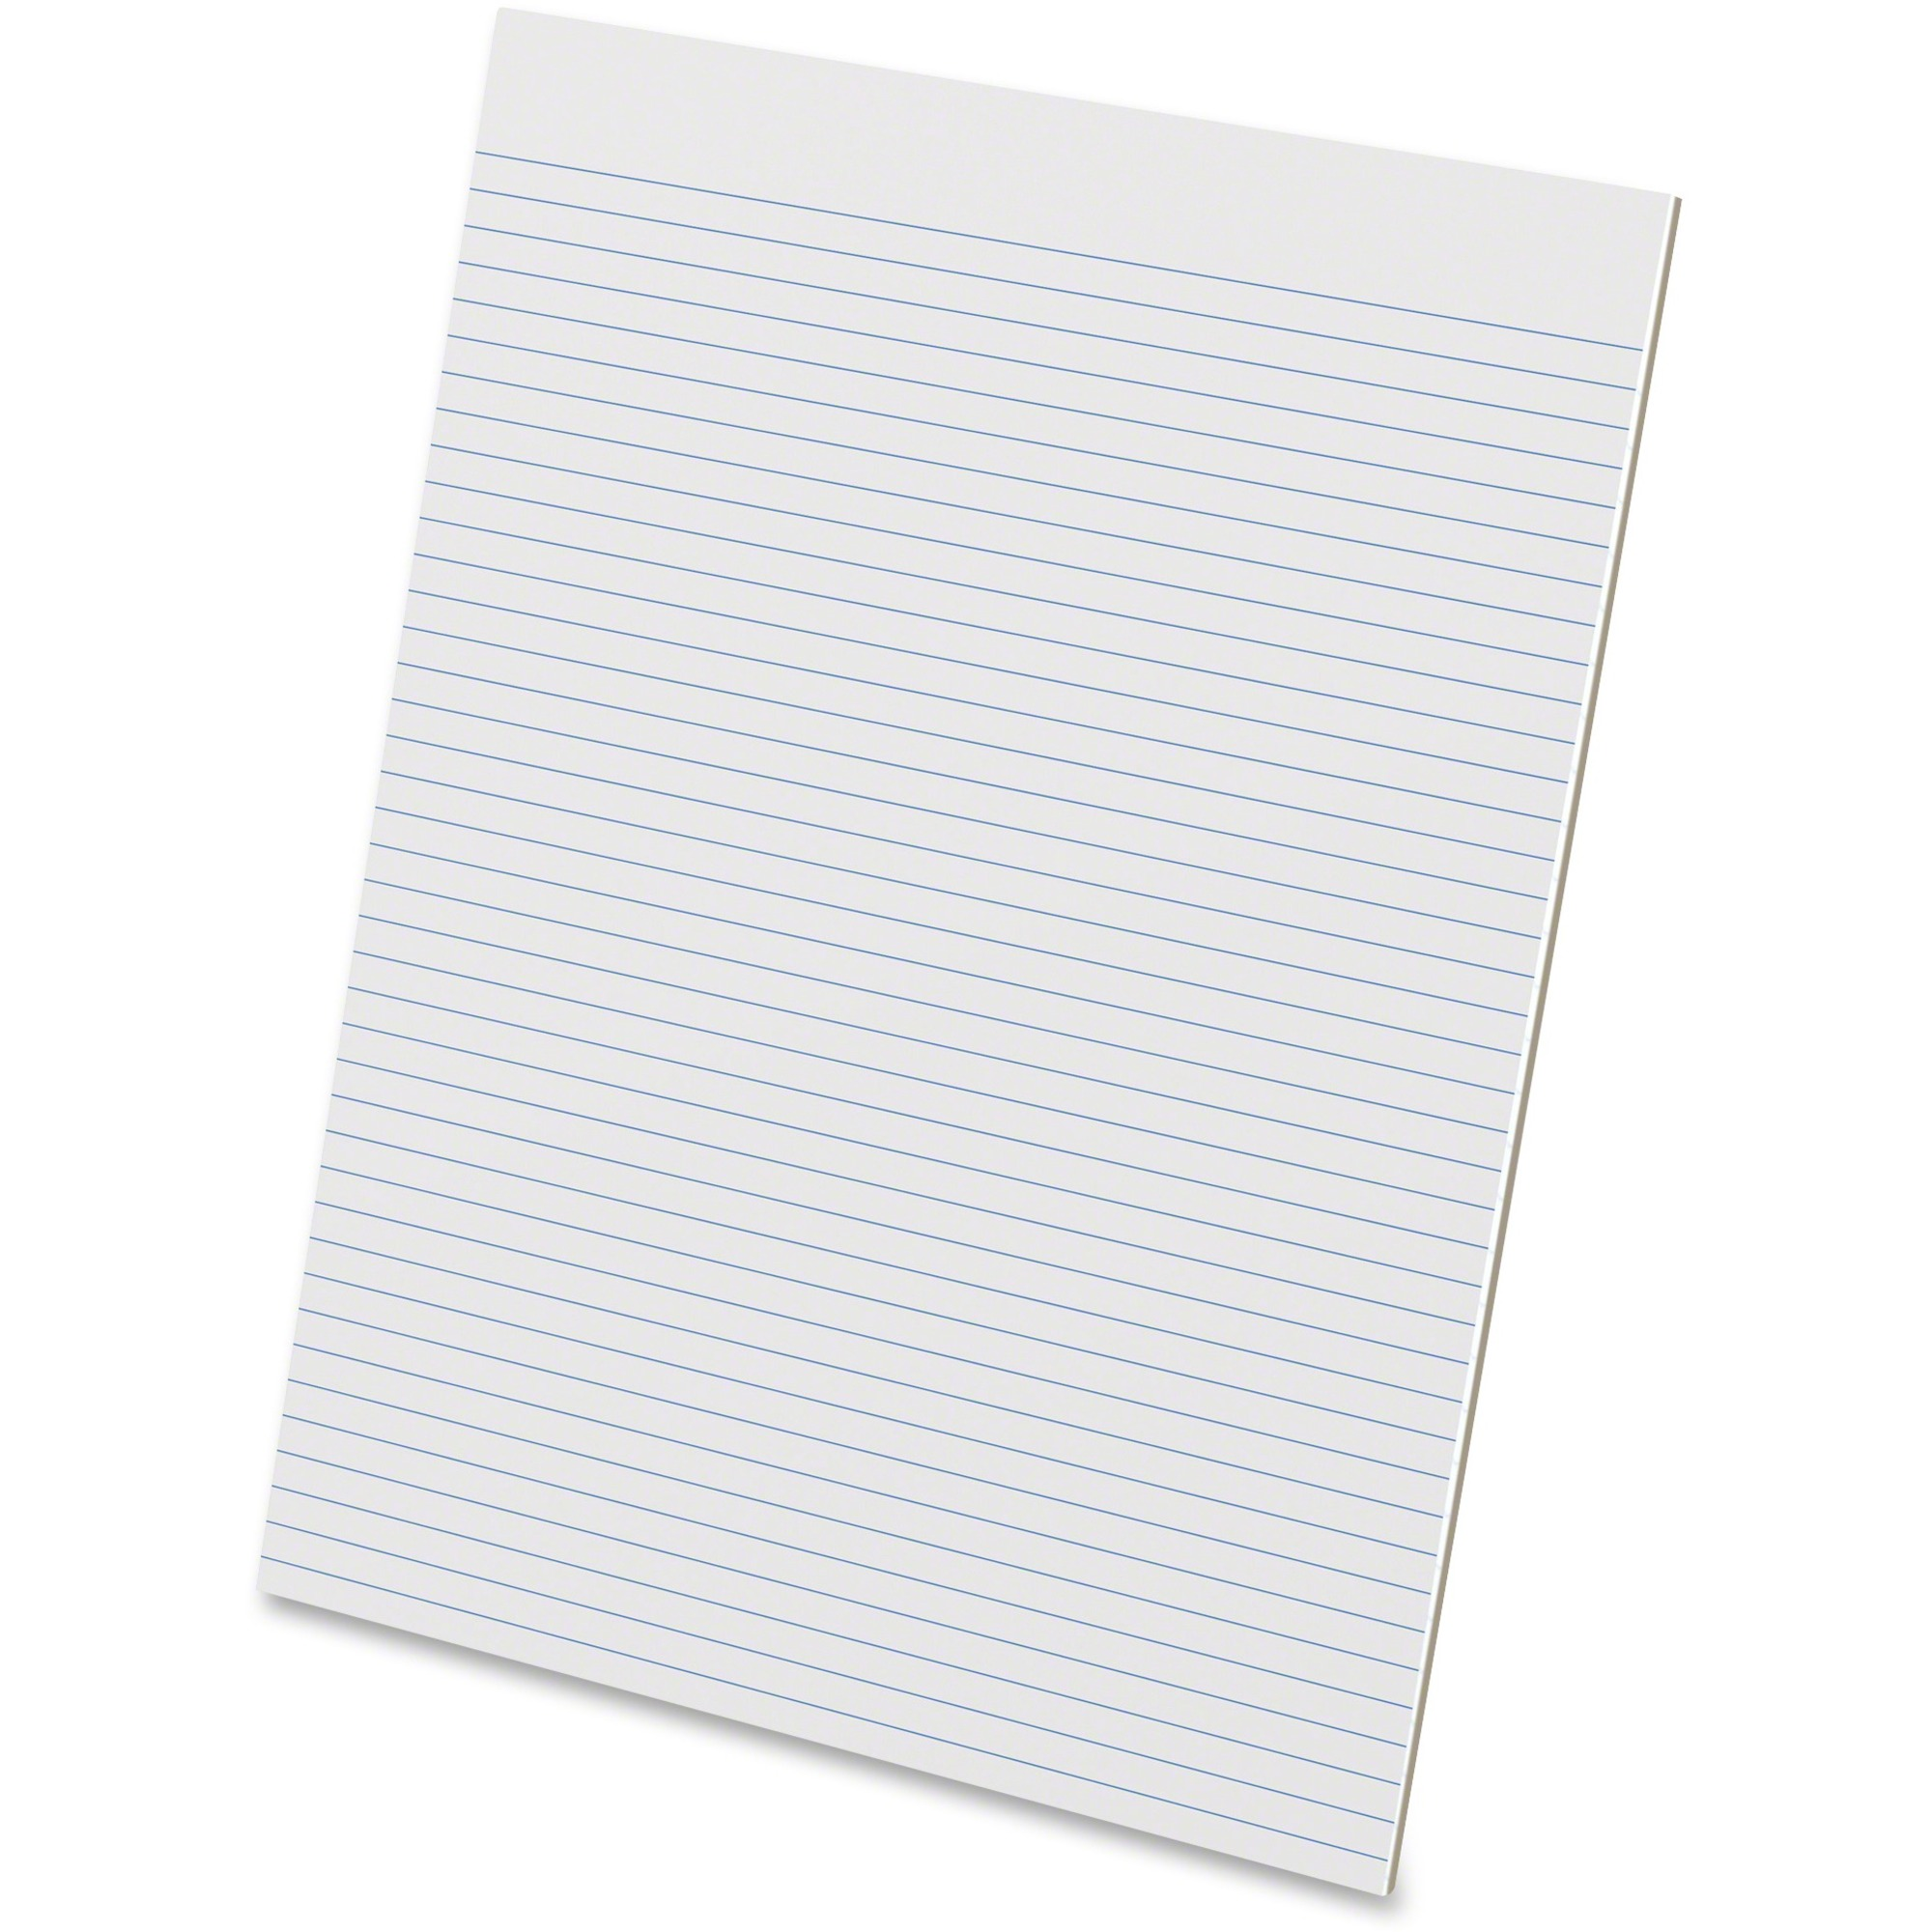 paper pad 2-9008 12 x 12 kraft classic designer paper pad for crafting, cardmaking, scrapbooking and invitations $1998 quantity add.